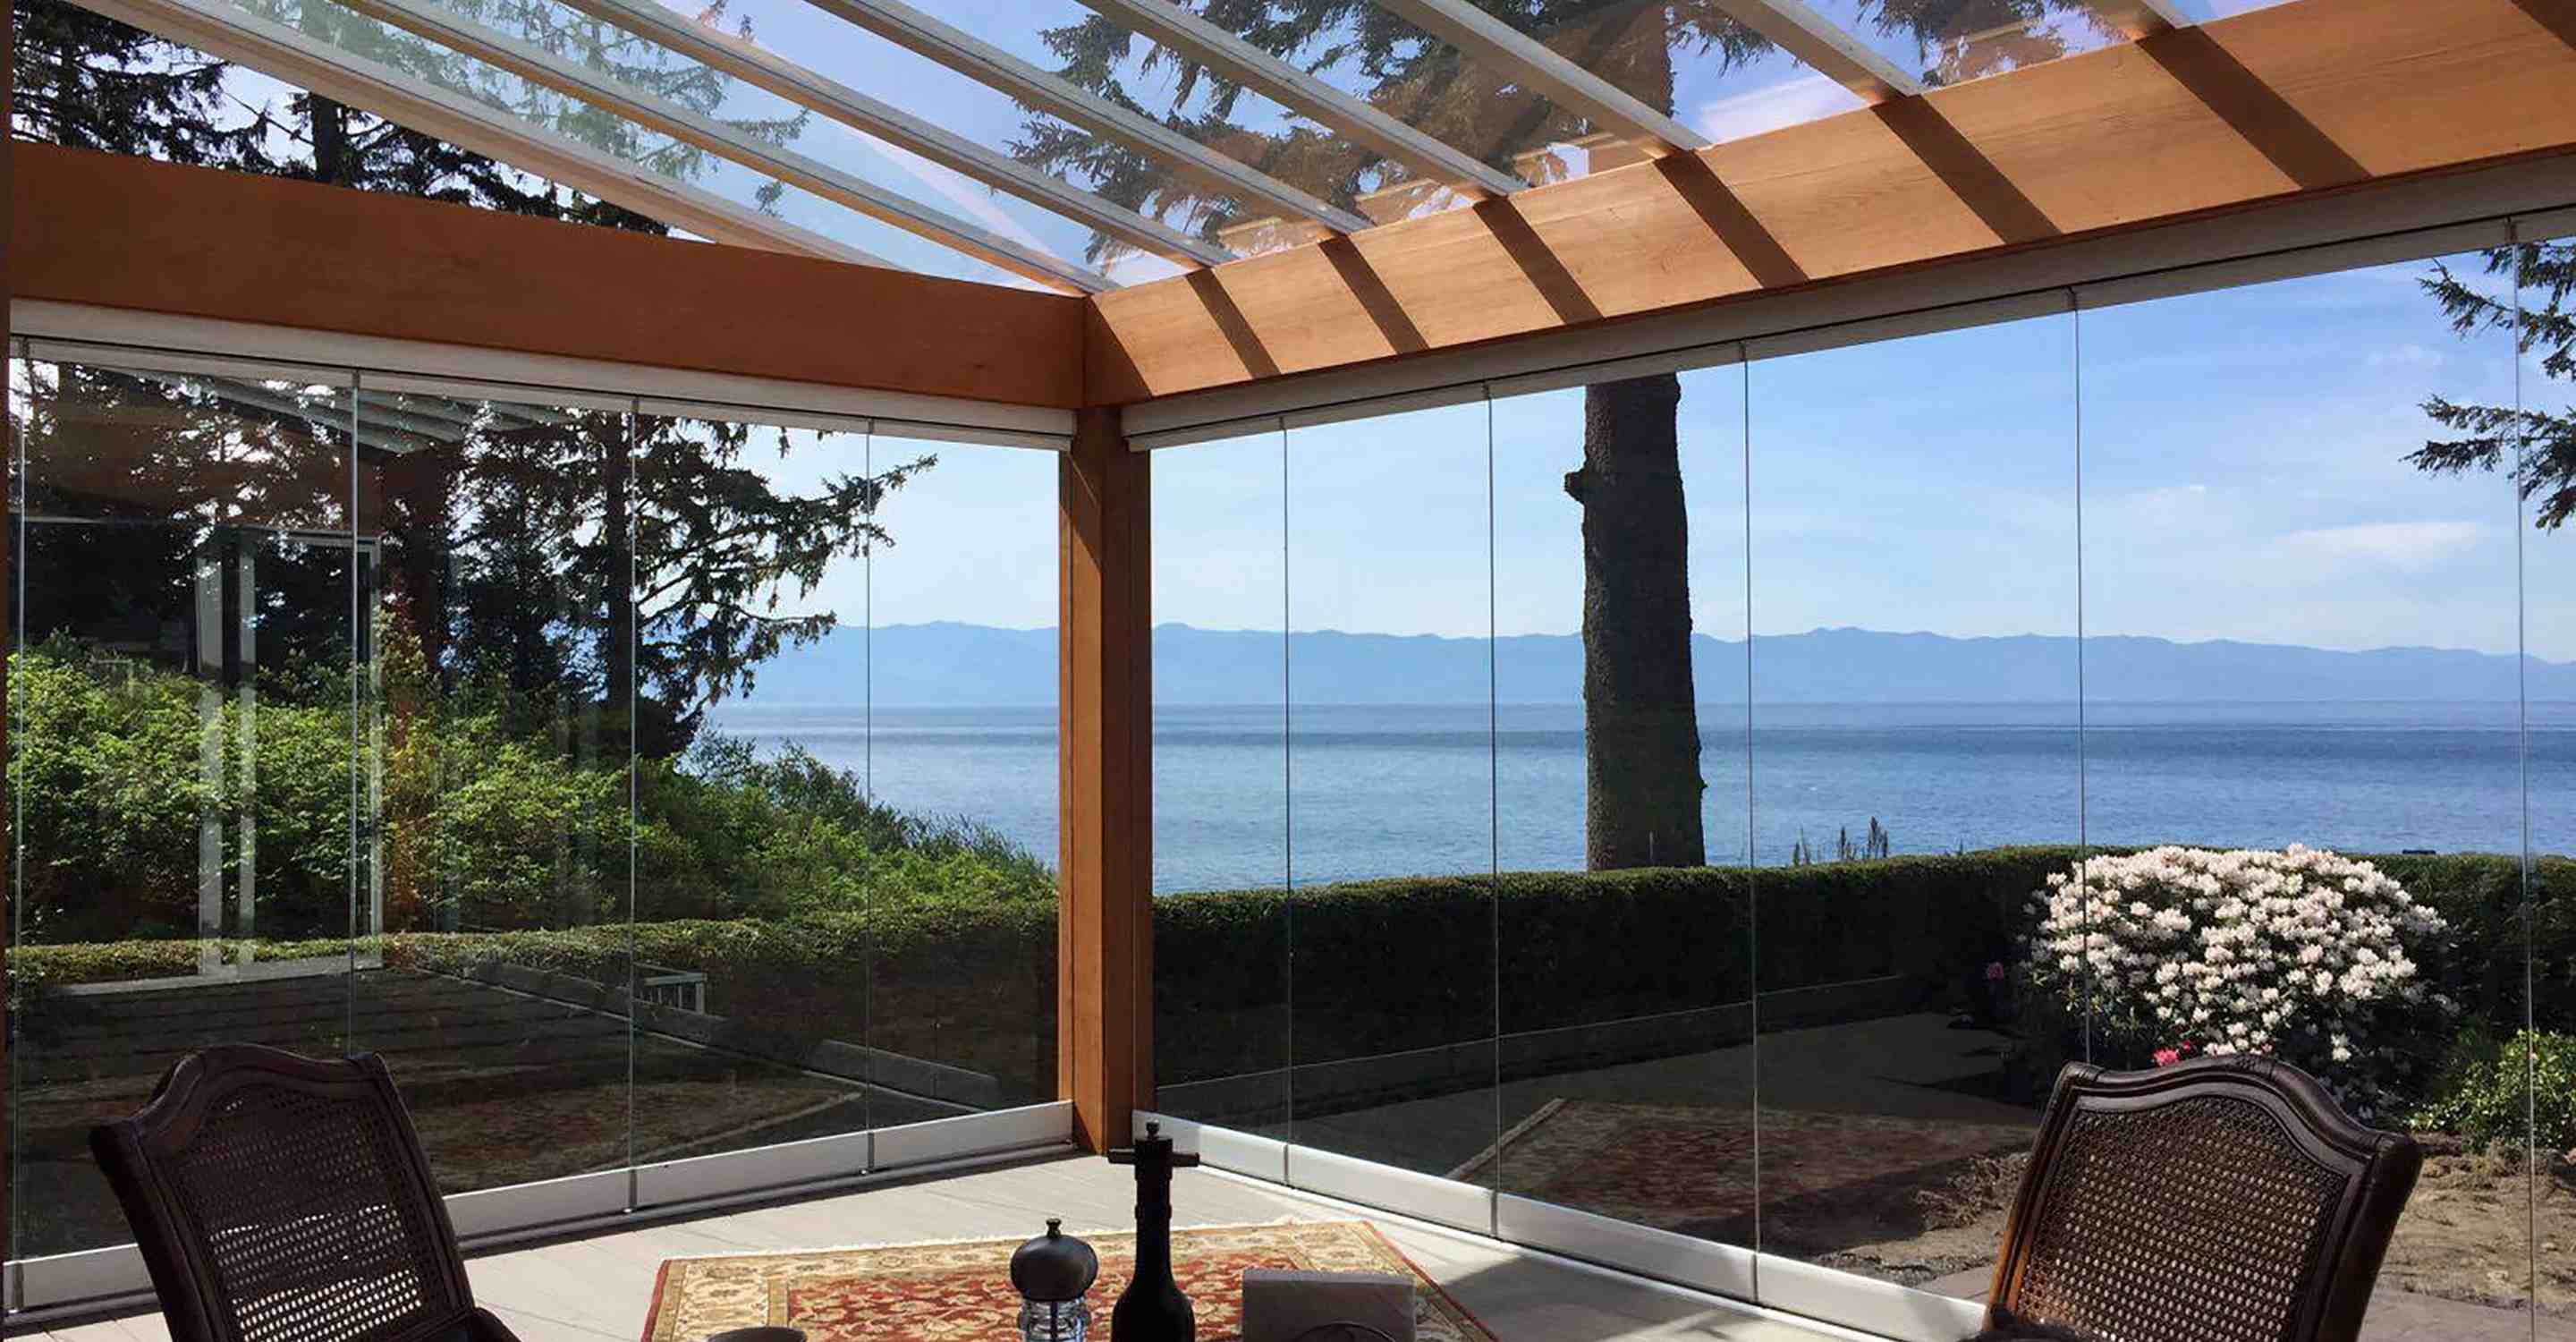 lumon canada, retractable glass walls, fall season, glass walls, outdoor living, retractable, sunrooms hamilton, sunrooms toronto, sunrooms vancouver, sunrooms vaughan, sunrooms langley, sunrooms stoney creek, sunrooms kitchener, sunrooms cambridge, sunrooms maple ridge, sunrooms mississauga